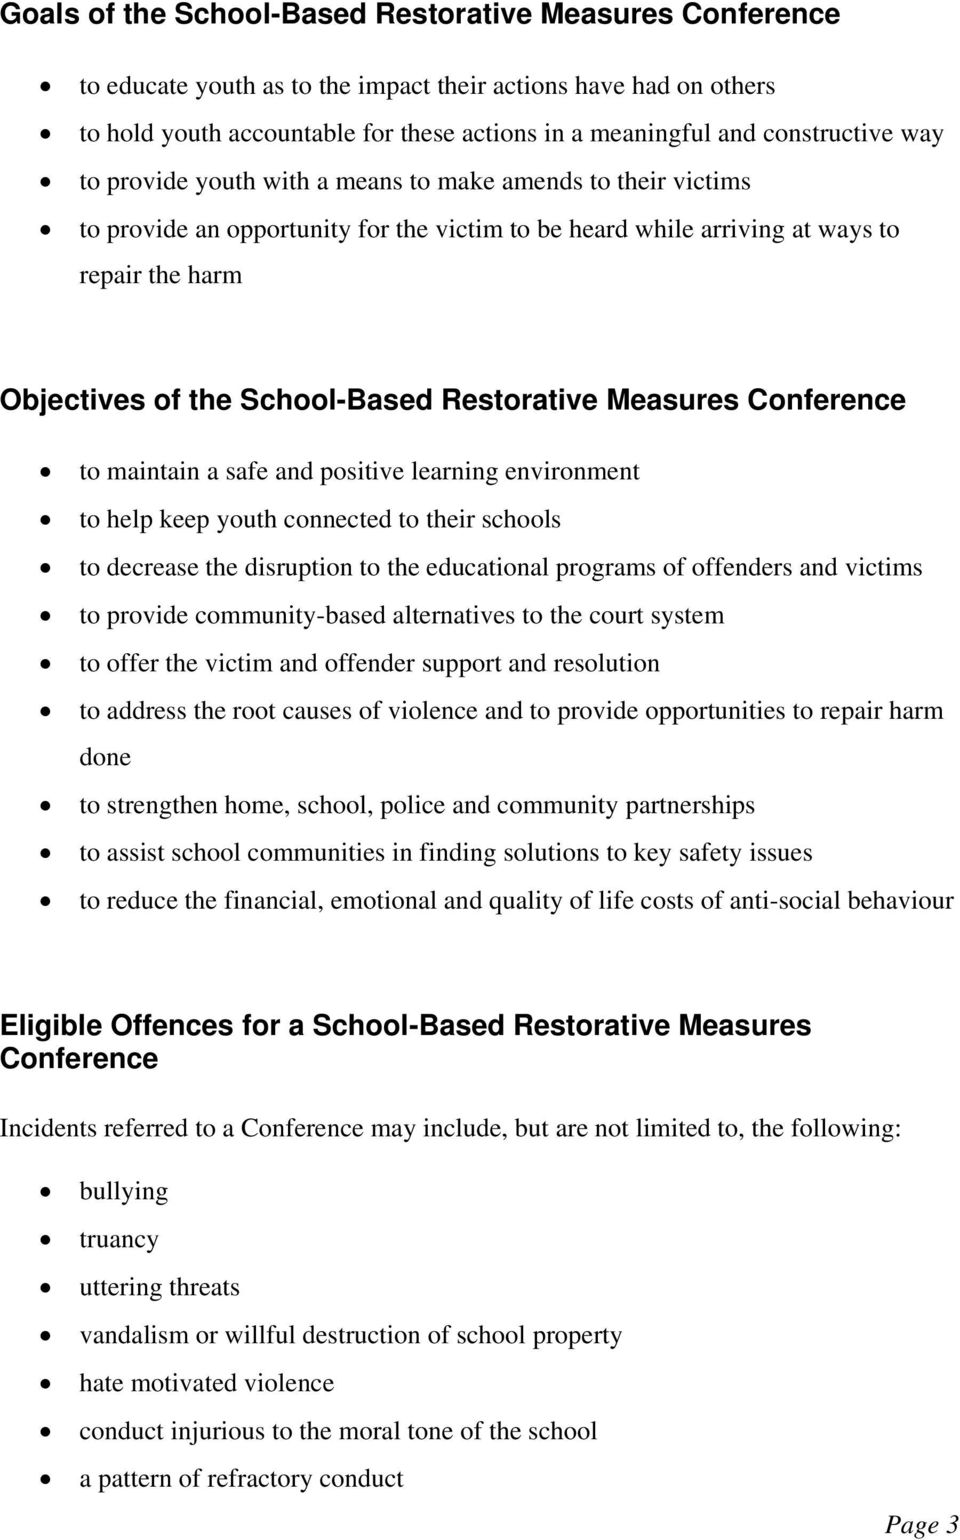 School-Based Restorative Measures Conference to maintain a safe and positive learning environment to help keep youth connected to their schools to decrease the disruption to the educational programs